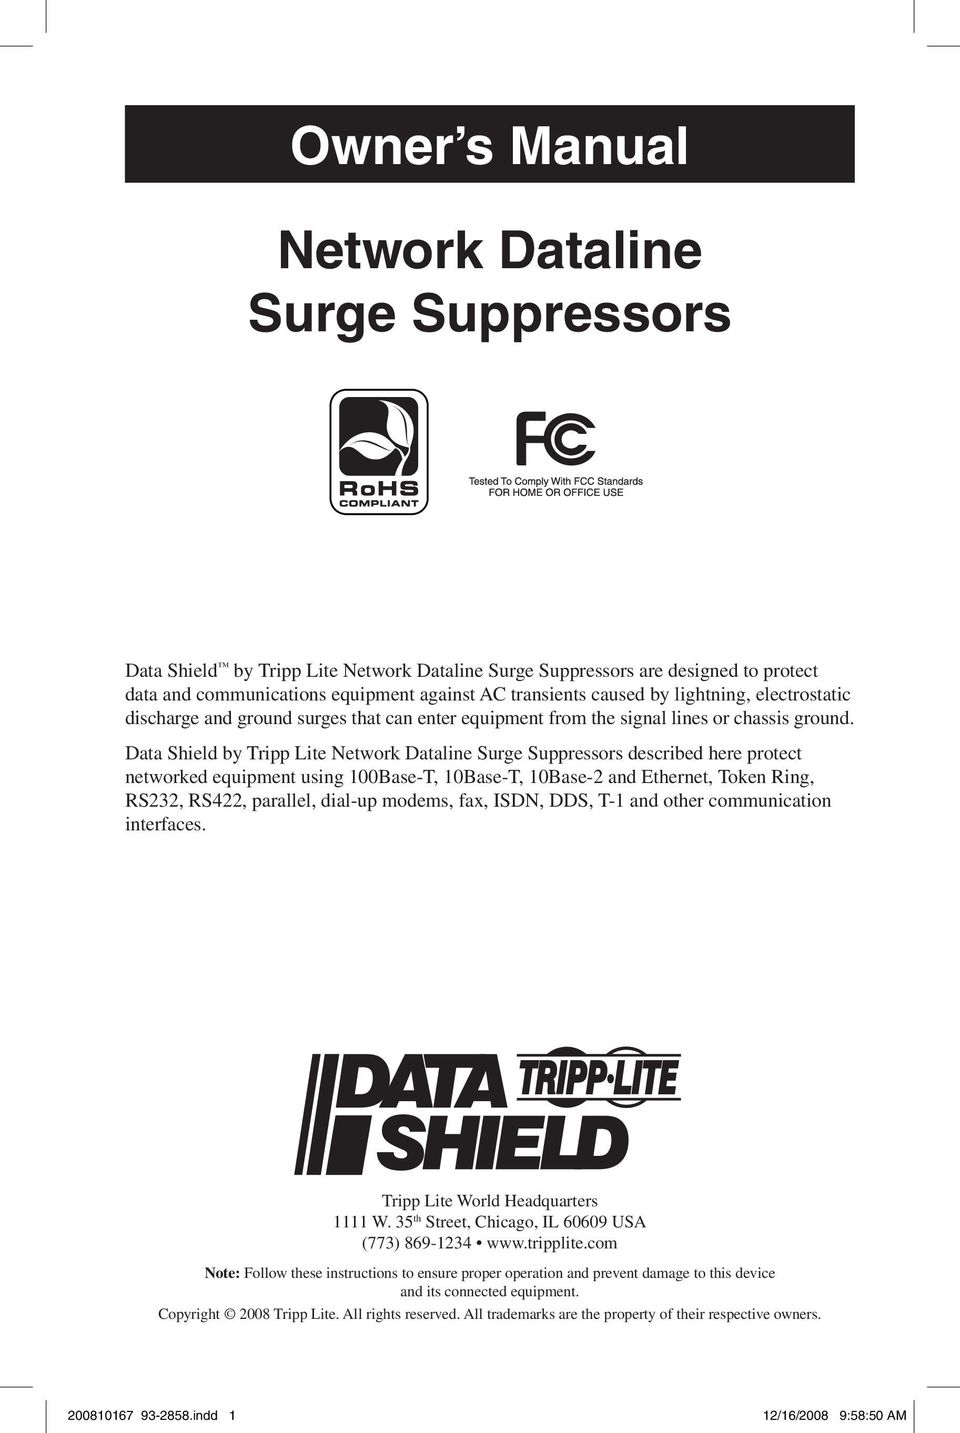 Data Shield by Tripp Lite Network Dataline Surge Suppressors described here protect networked equipment using 100Base-T, 10Base-T, 10Base-2 and Ethernet, Token Ring, RS232, RS422, parallel, dial-up